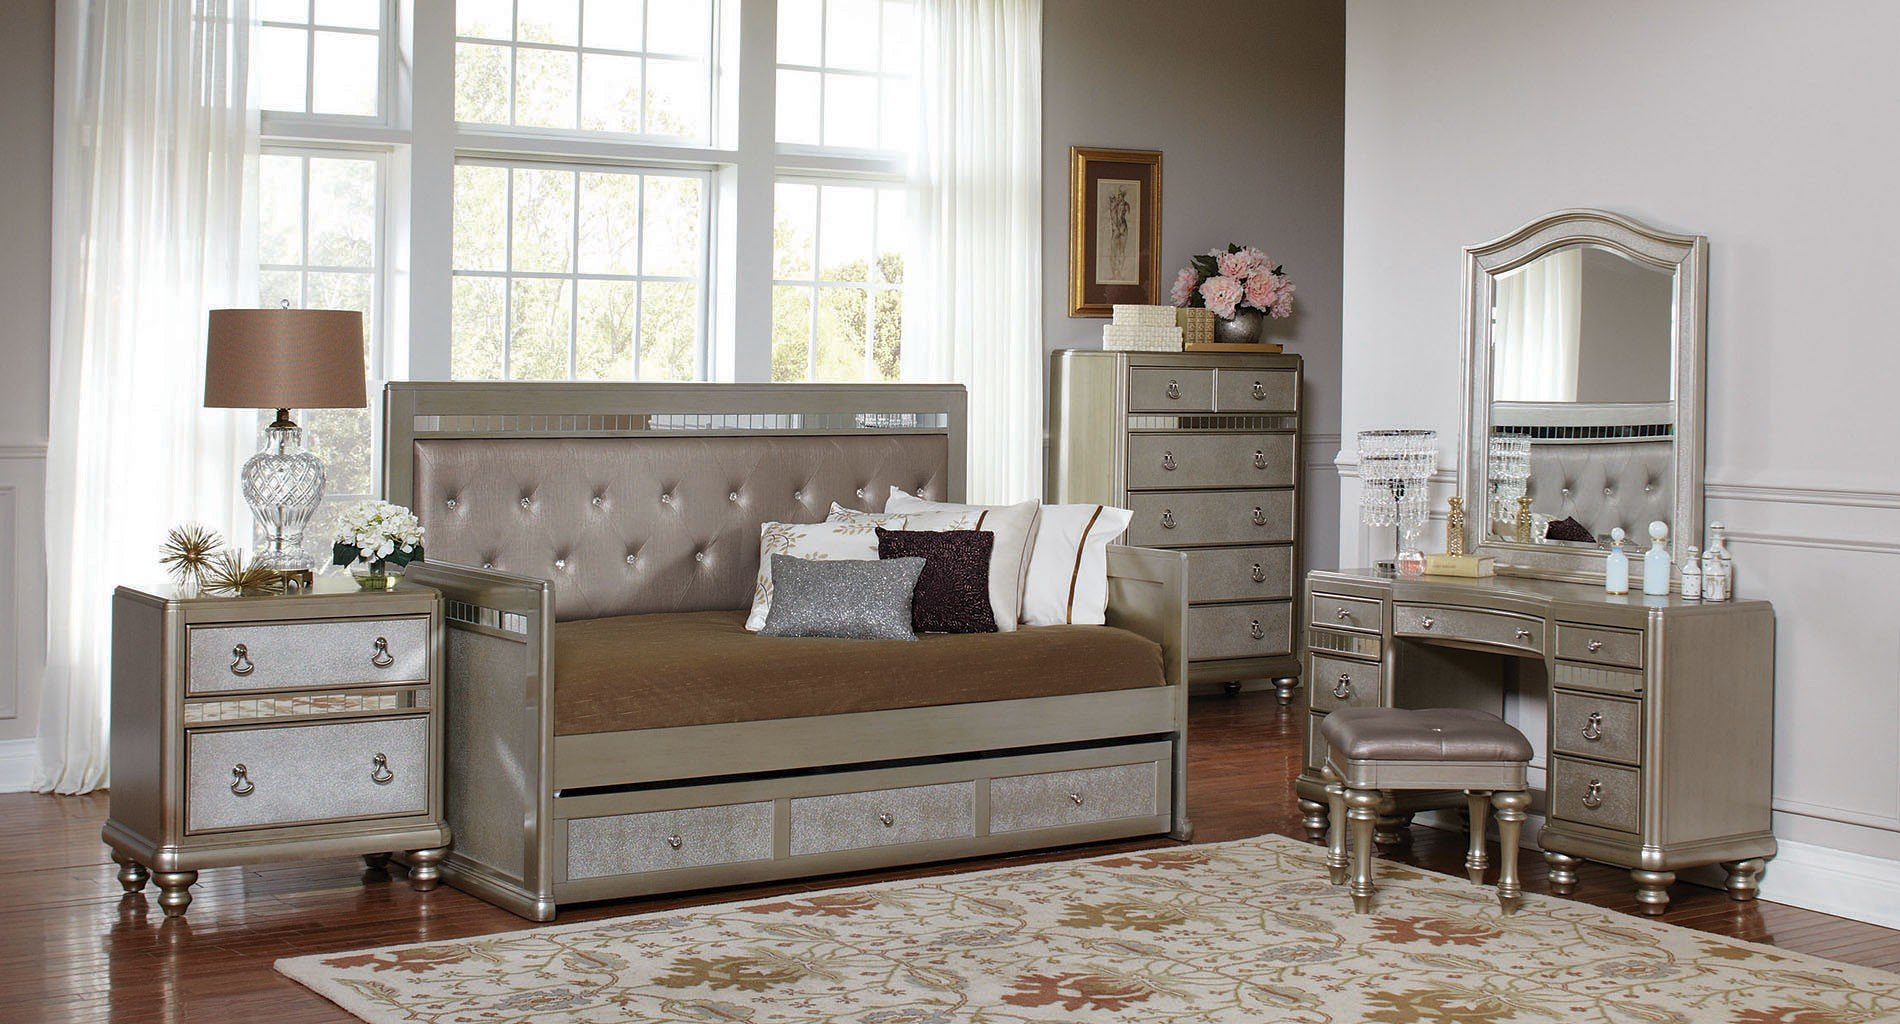 Bling Game Daybed Bedroom Set Kids Room Sets Kids And